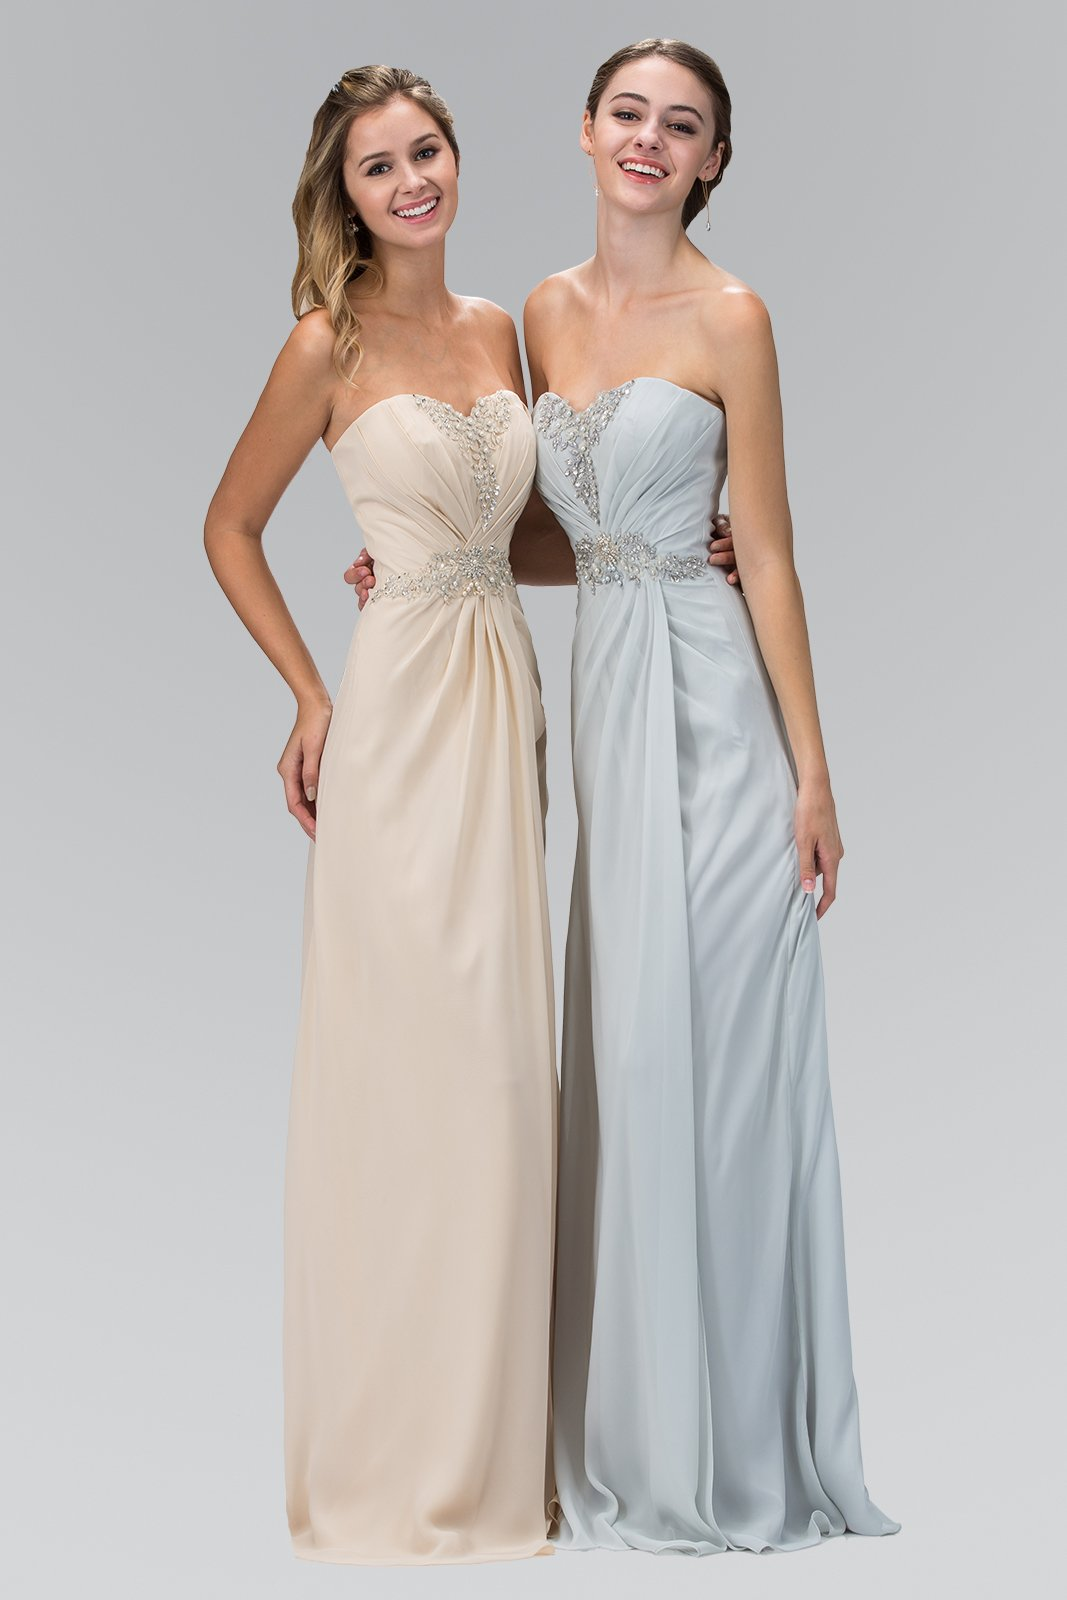 Elizabeth K - GL2060 Crystal Beaded Strapless Sweetheart A-Line Gown In Neutral and Gray